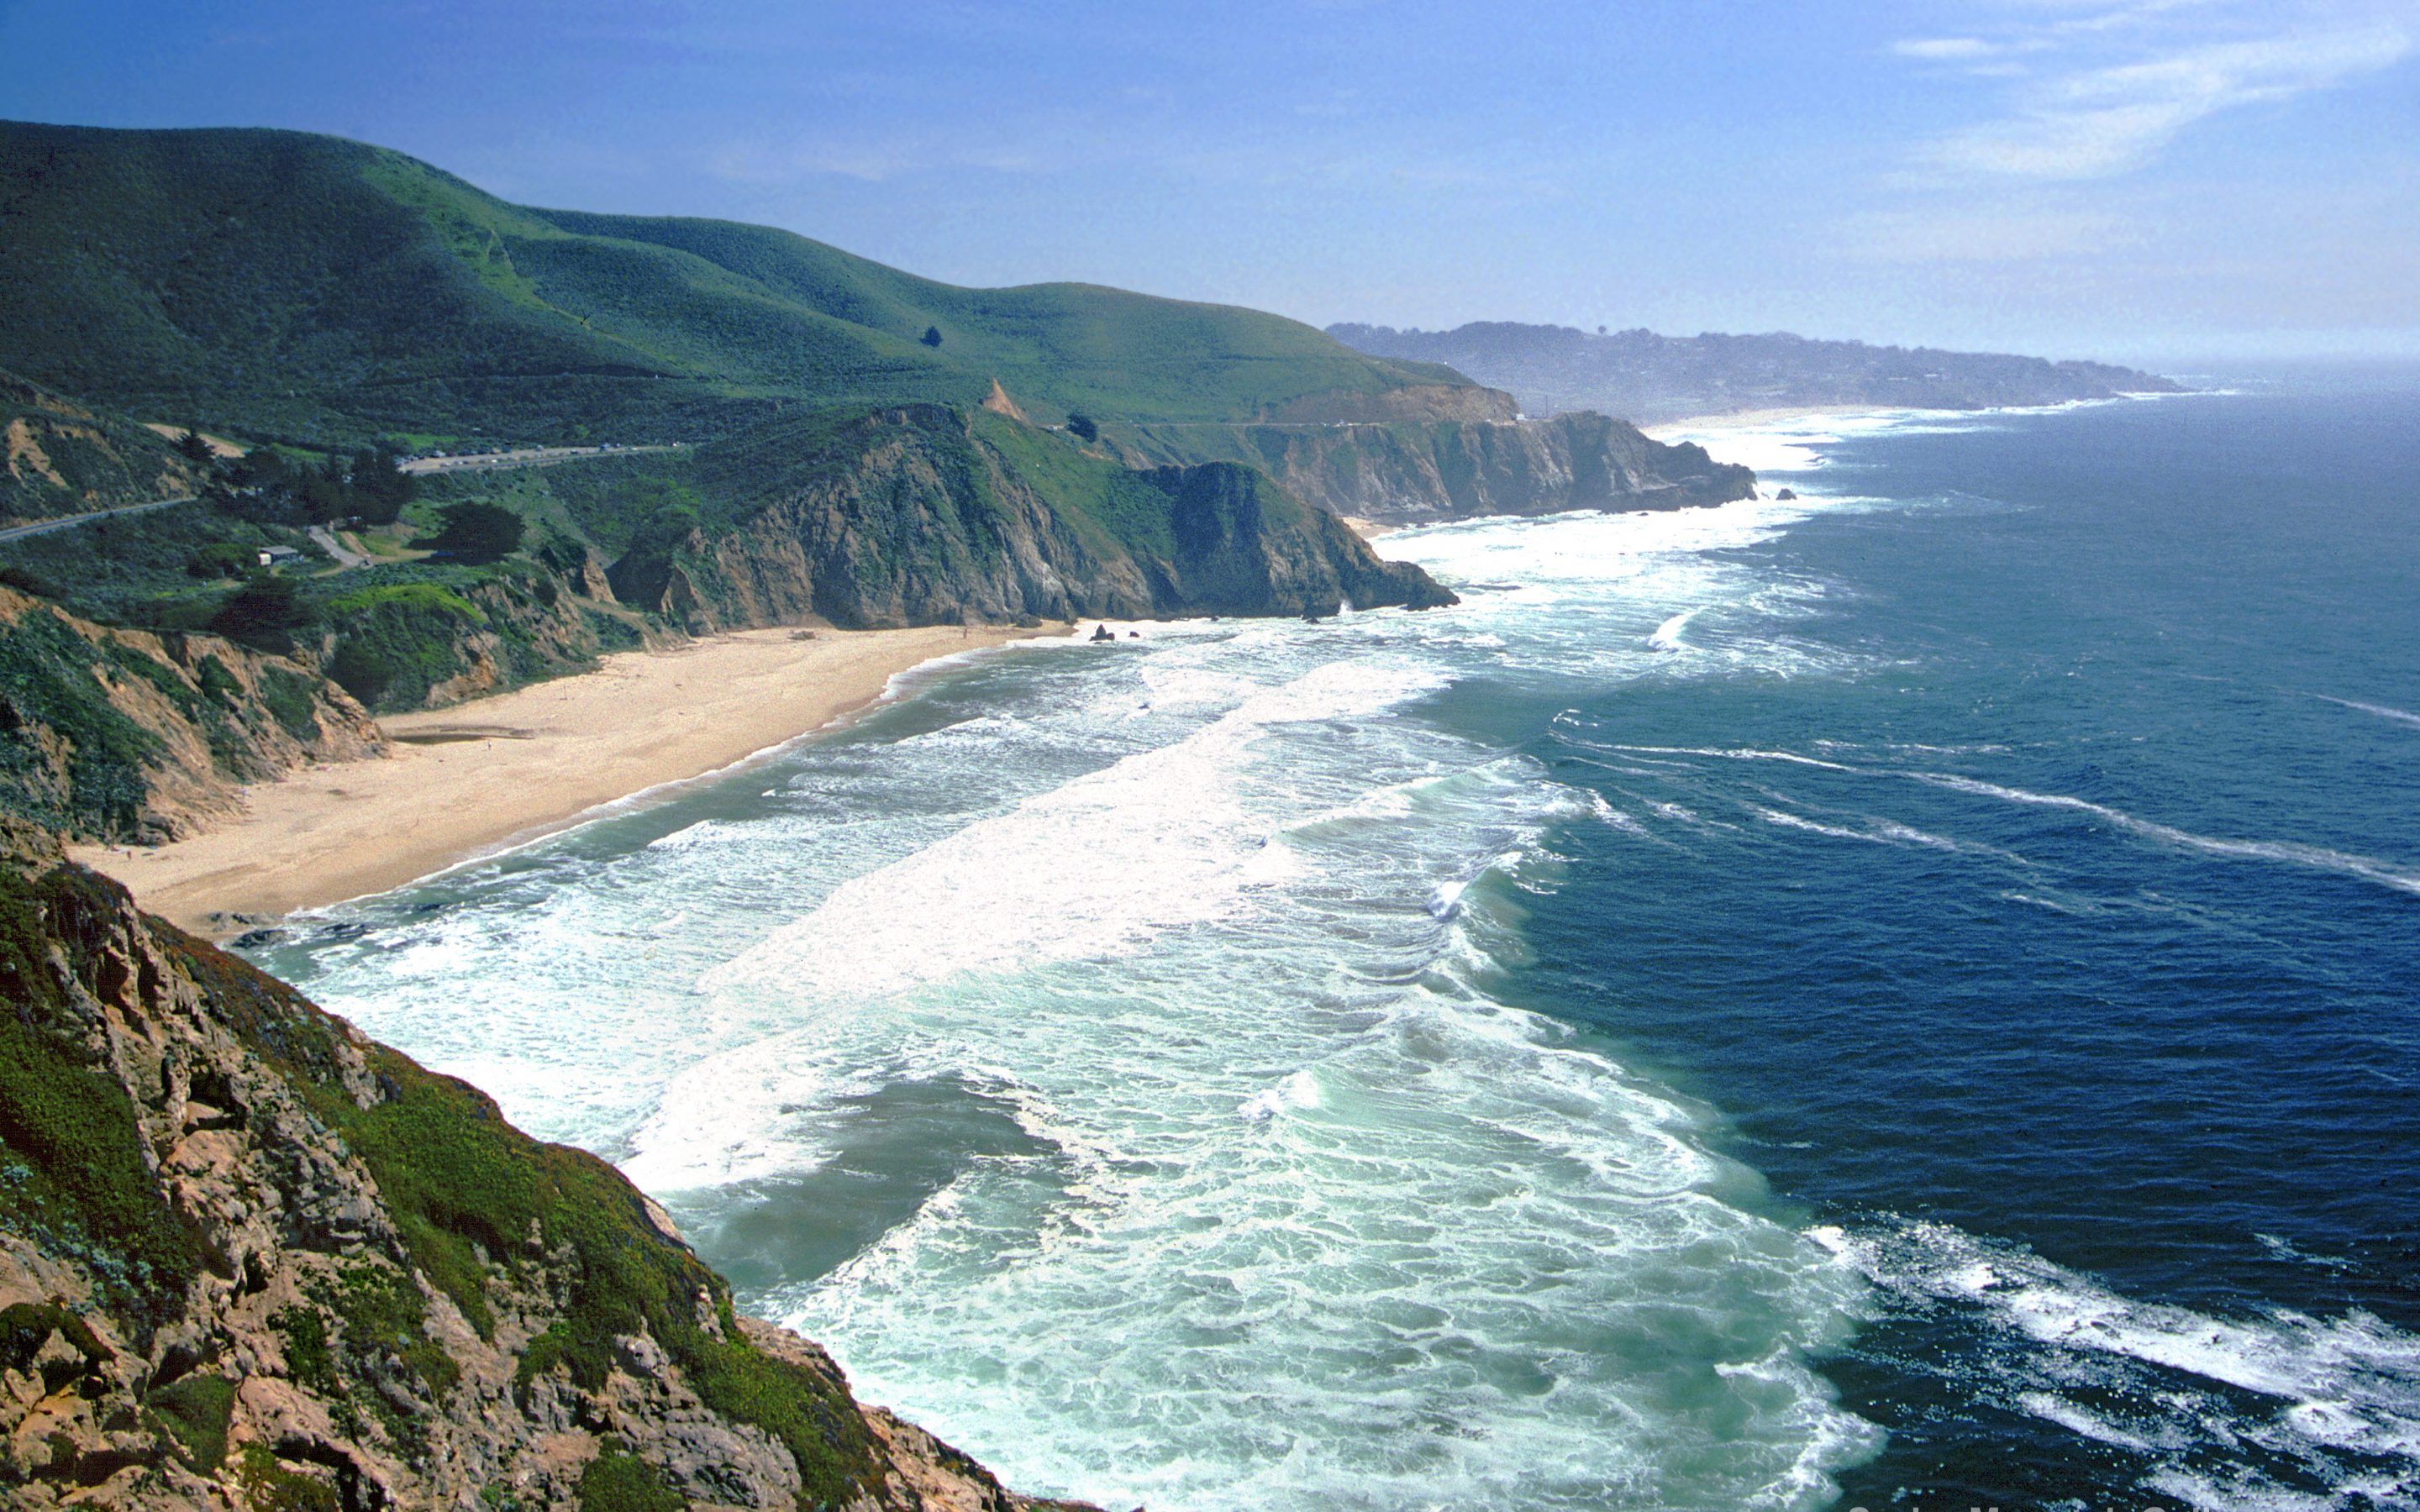 half moon bay dating Meetings are arranged by date, with the most recent at the top of the list click  video to listen to the meeting and view agenda documents, or agenda or minutes .